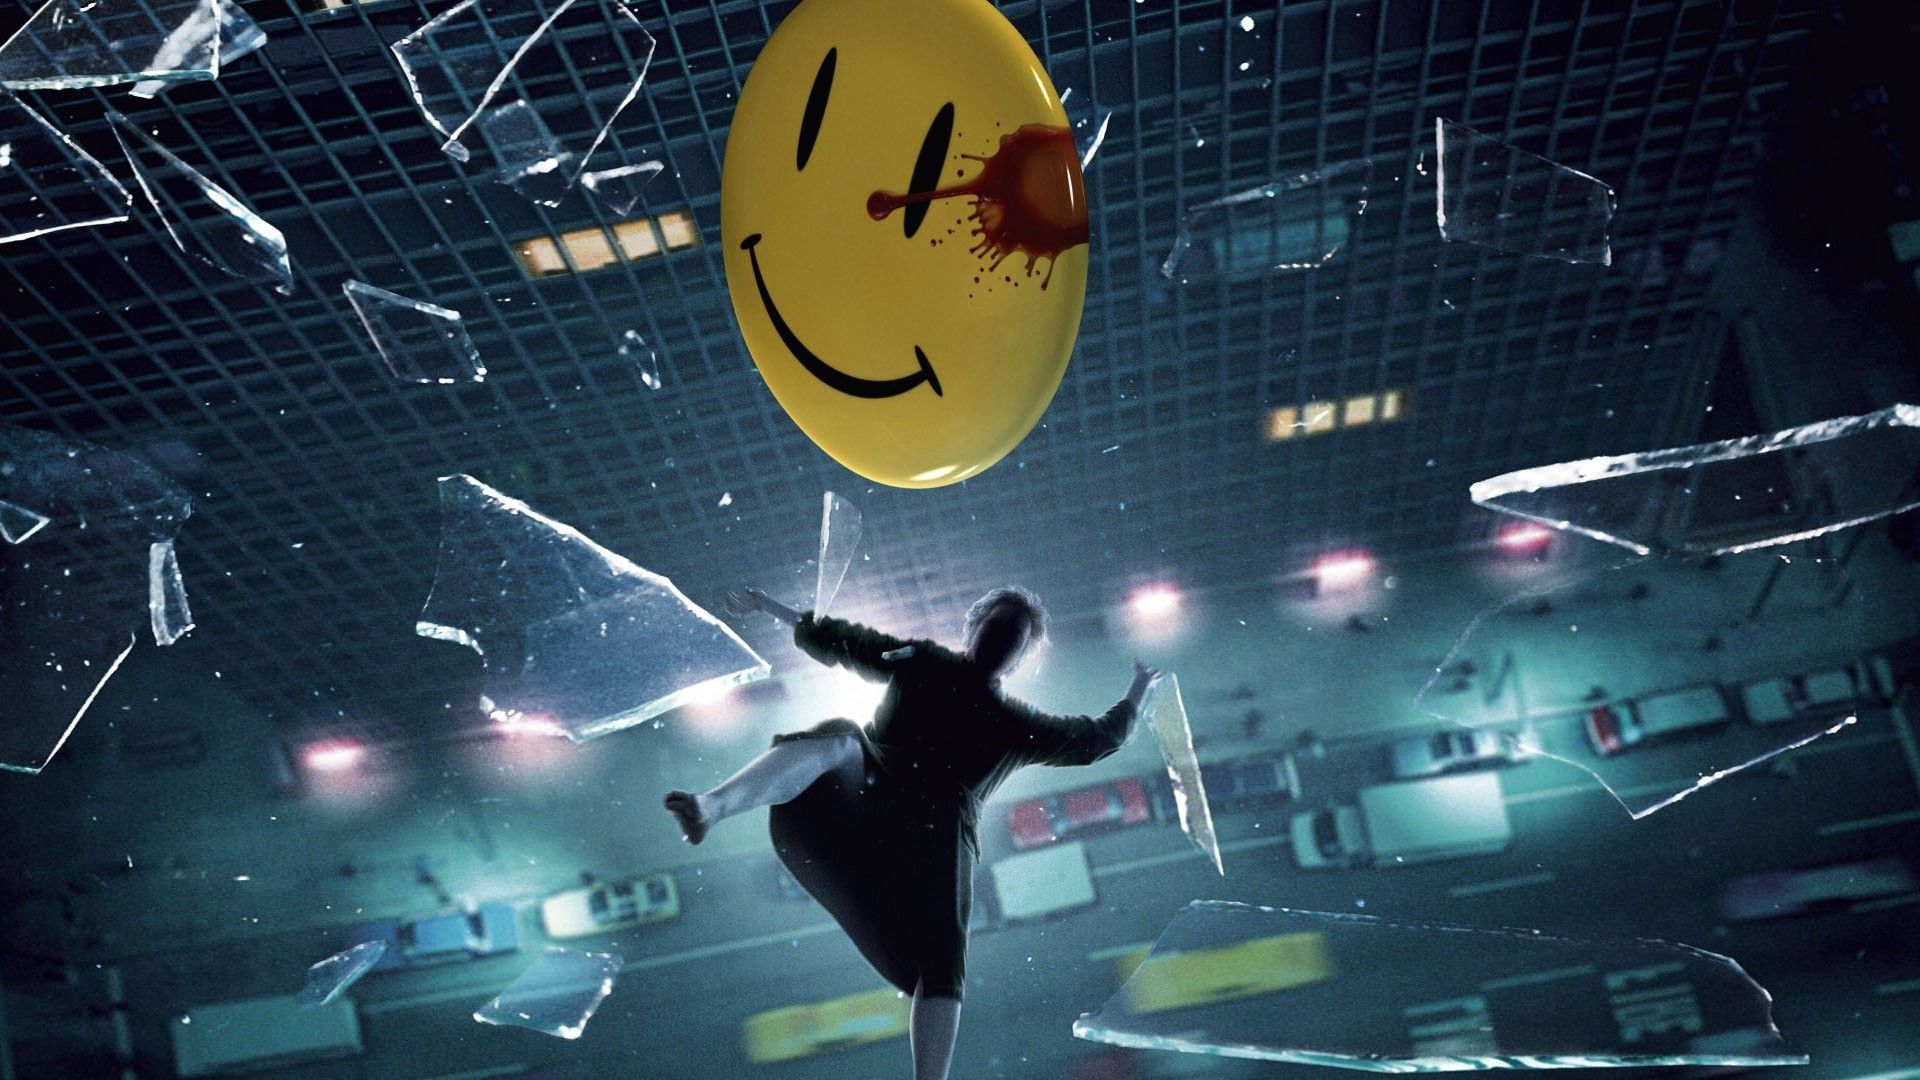 Download Hd Wallpapers Of 54126 Movies Watchmen Jeffrey Dean Morgan Edward Blake The Comedian Falling Broken Glass Smi Watchmen Movie Scenes Movie Shots